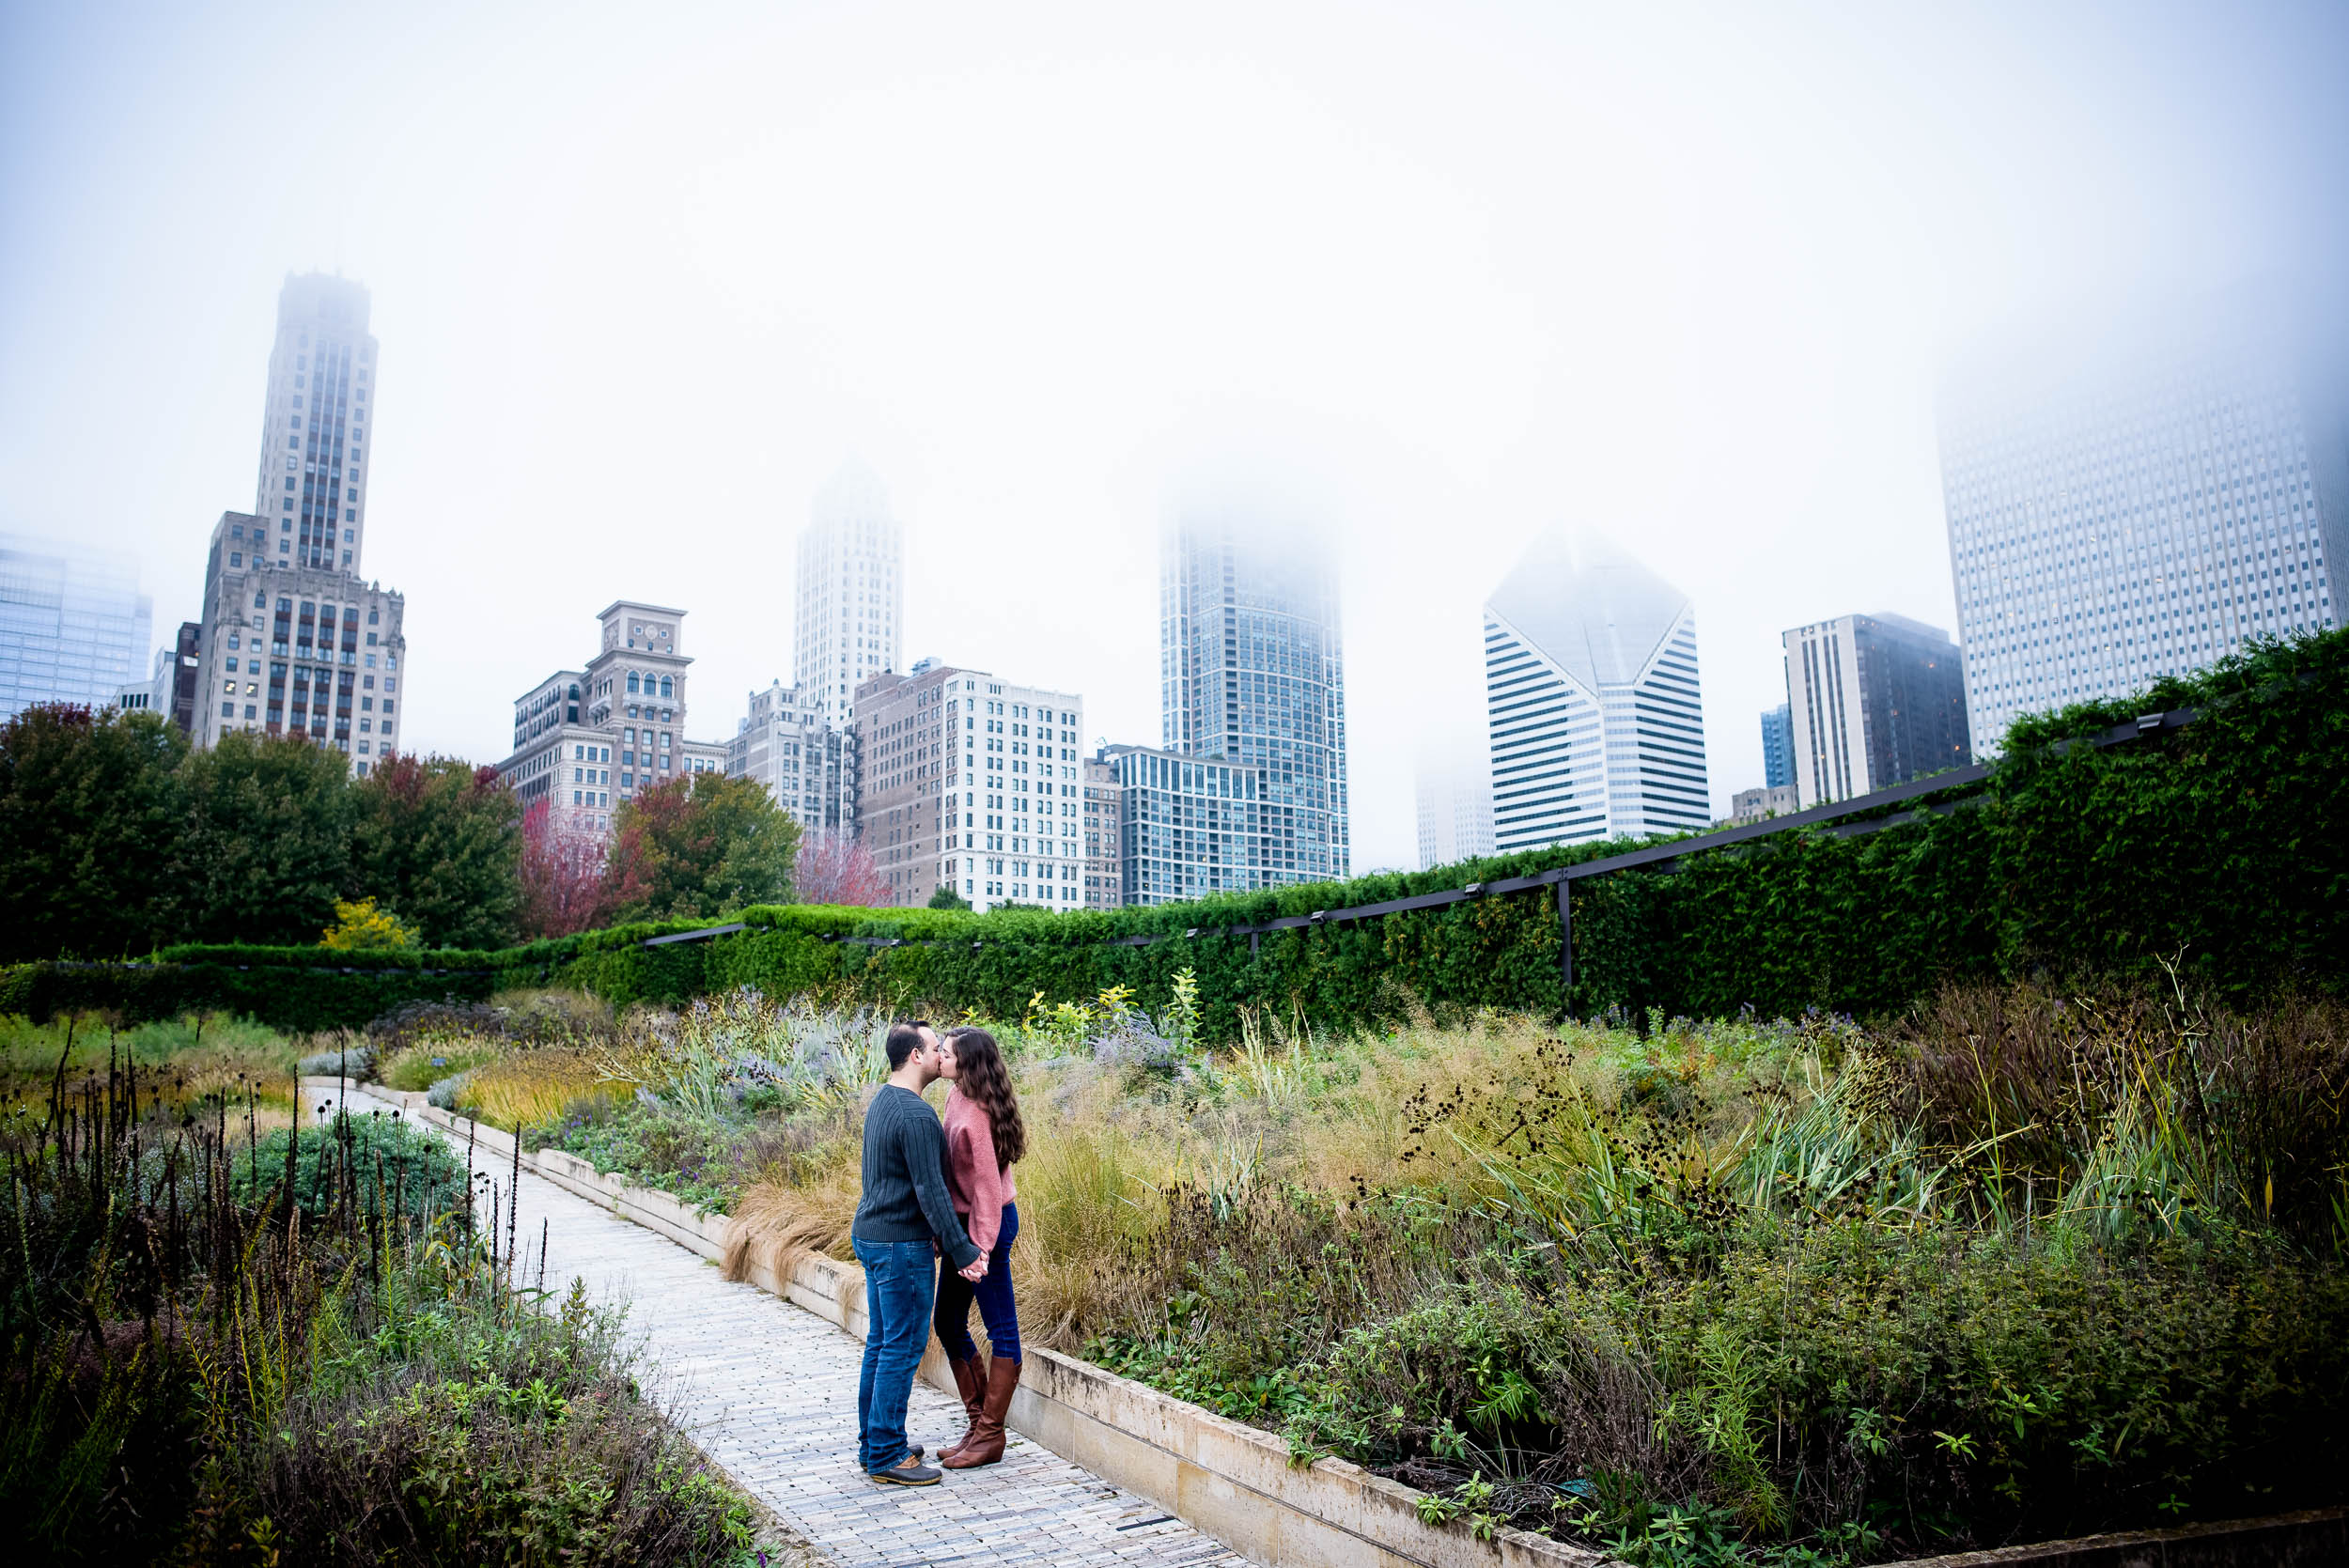 Downtown Chicago engagement session captured by J. Brown Photography. See more engagement photo ideas at jbrownphotography.com!